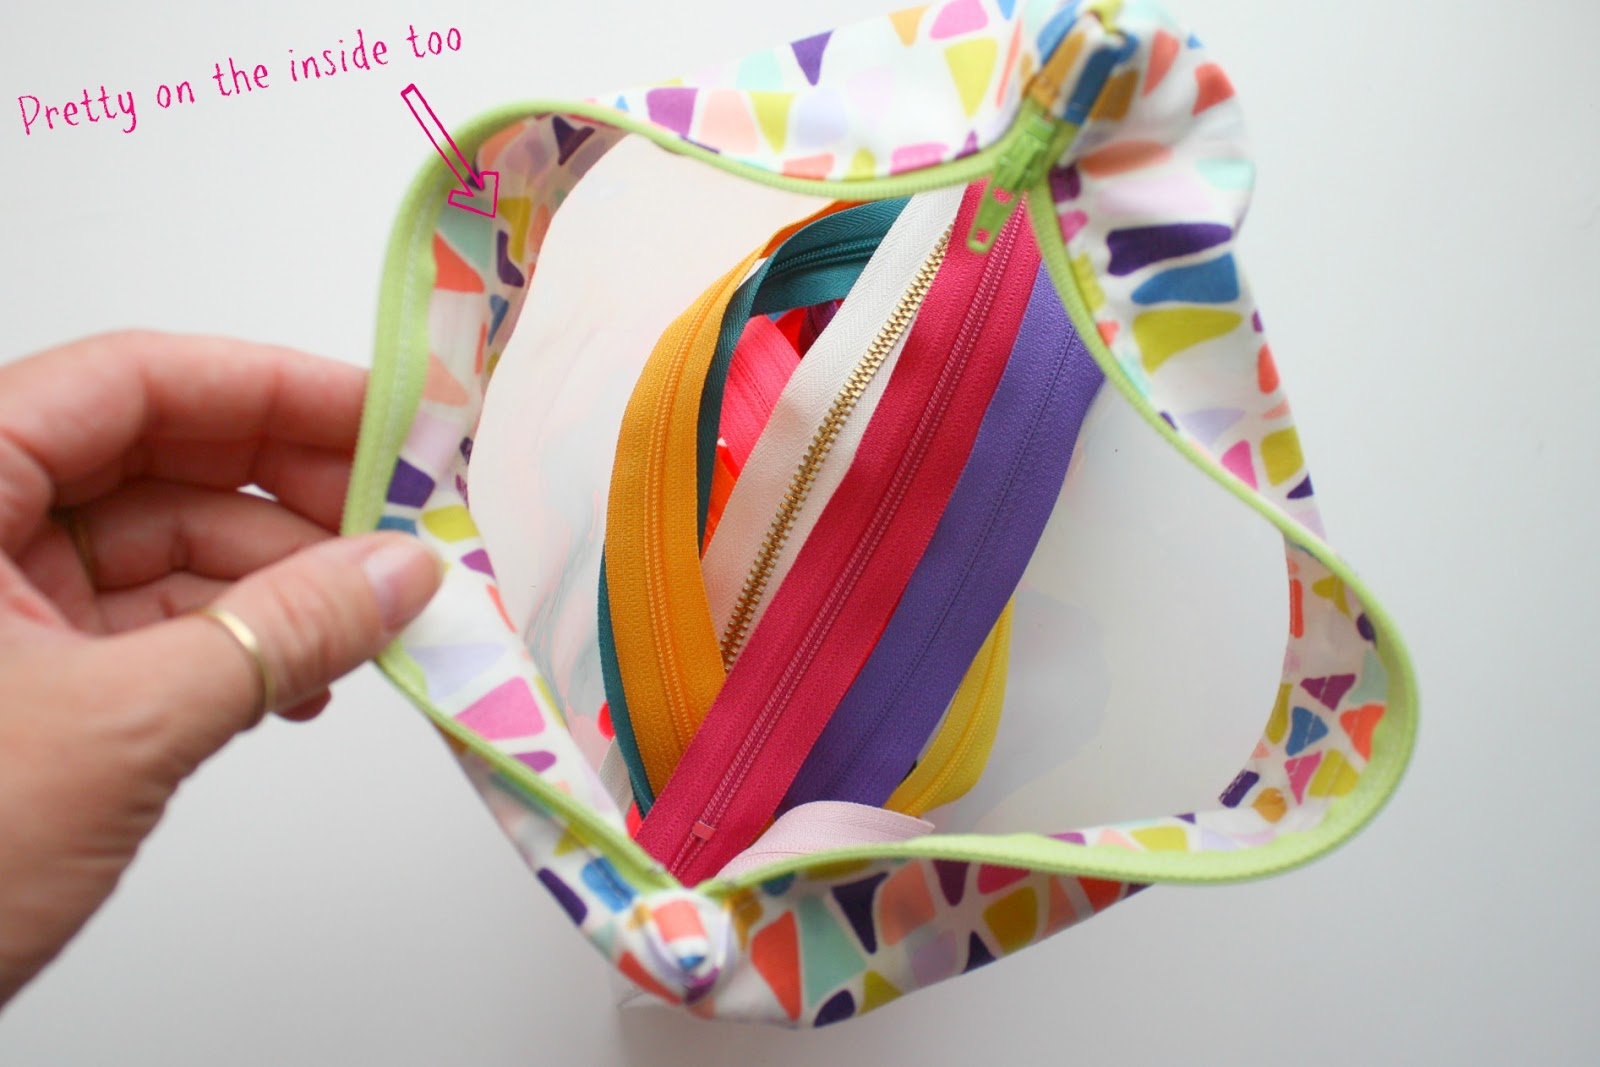 Sewing Vinyl Bags Zipper Pouch Sewhungryhippie How To Sew A Clear Vinyl Bag